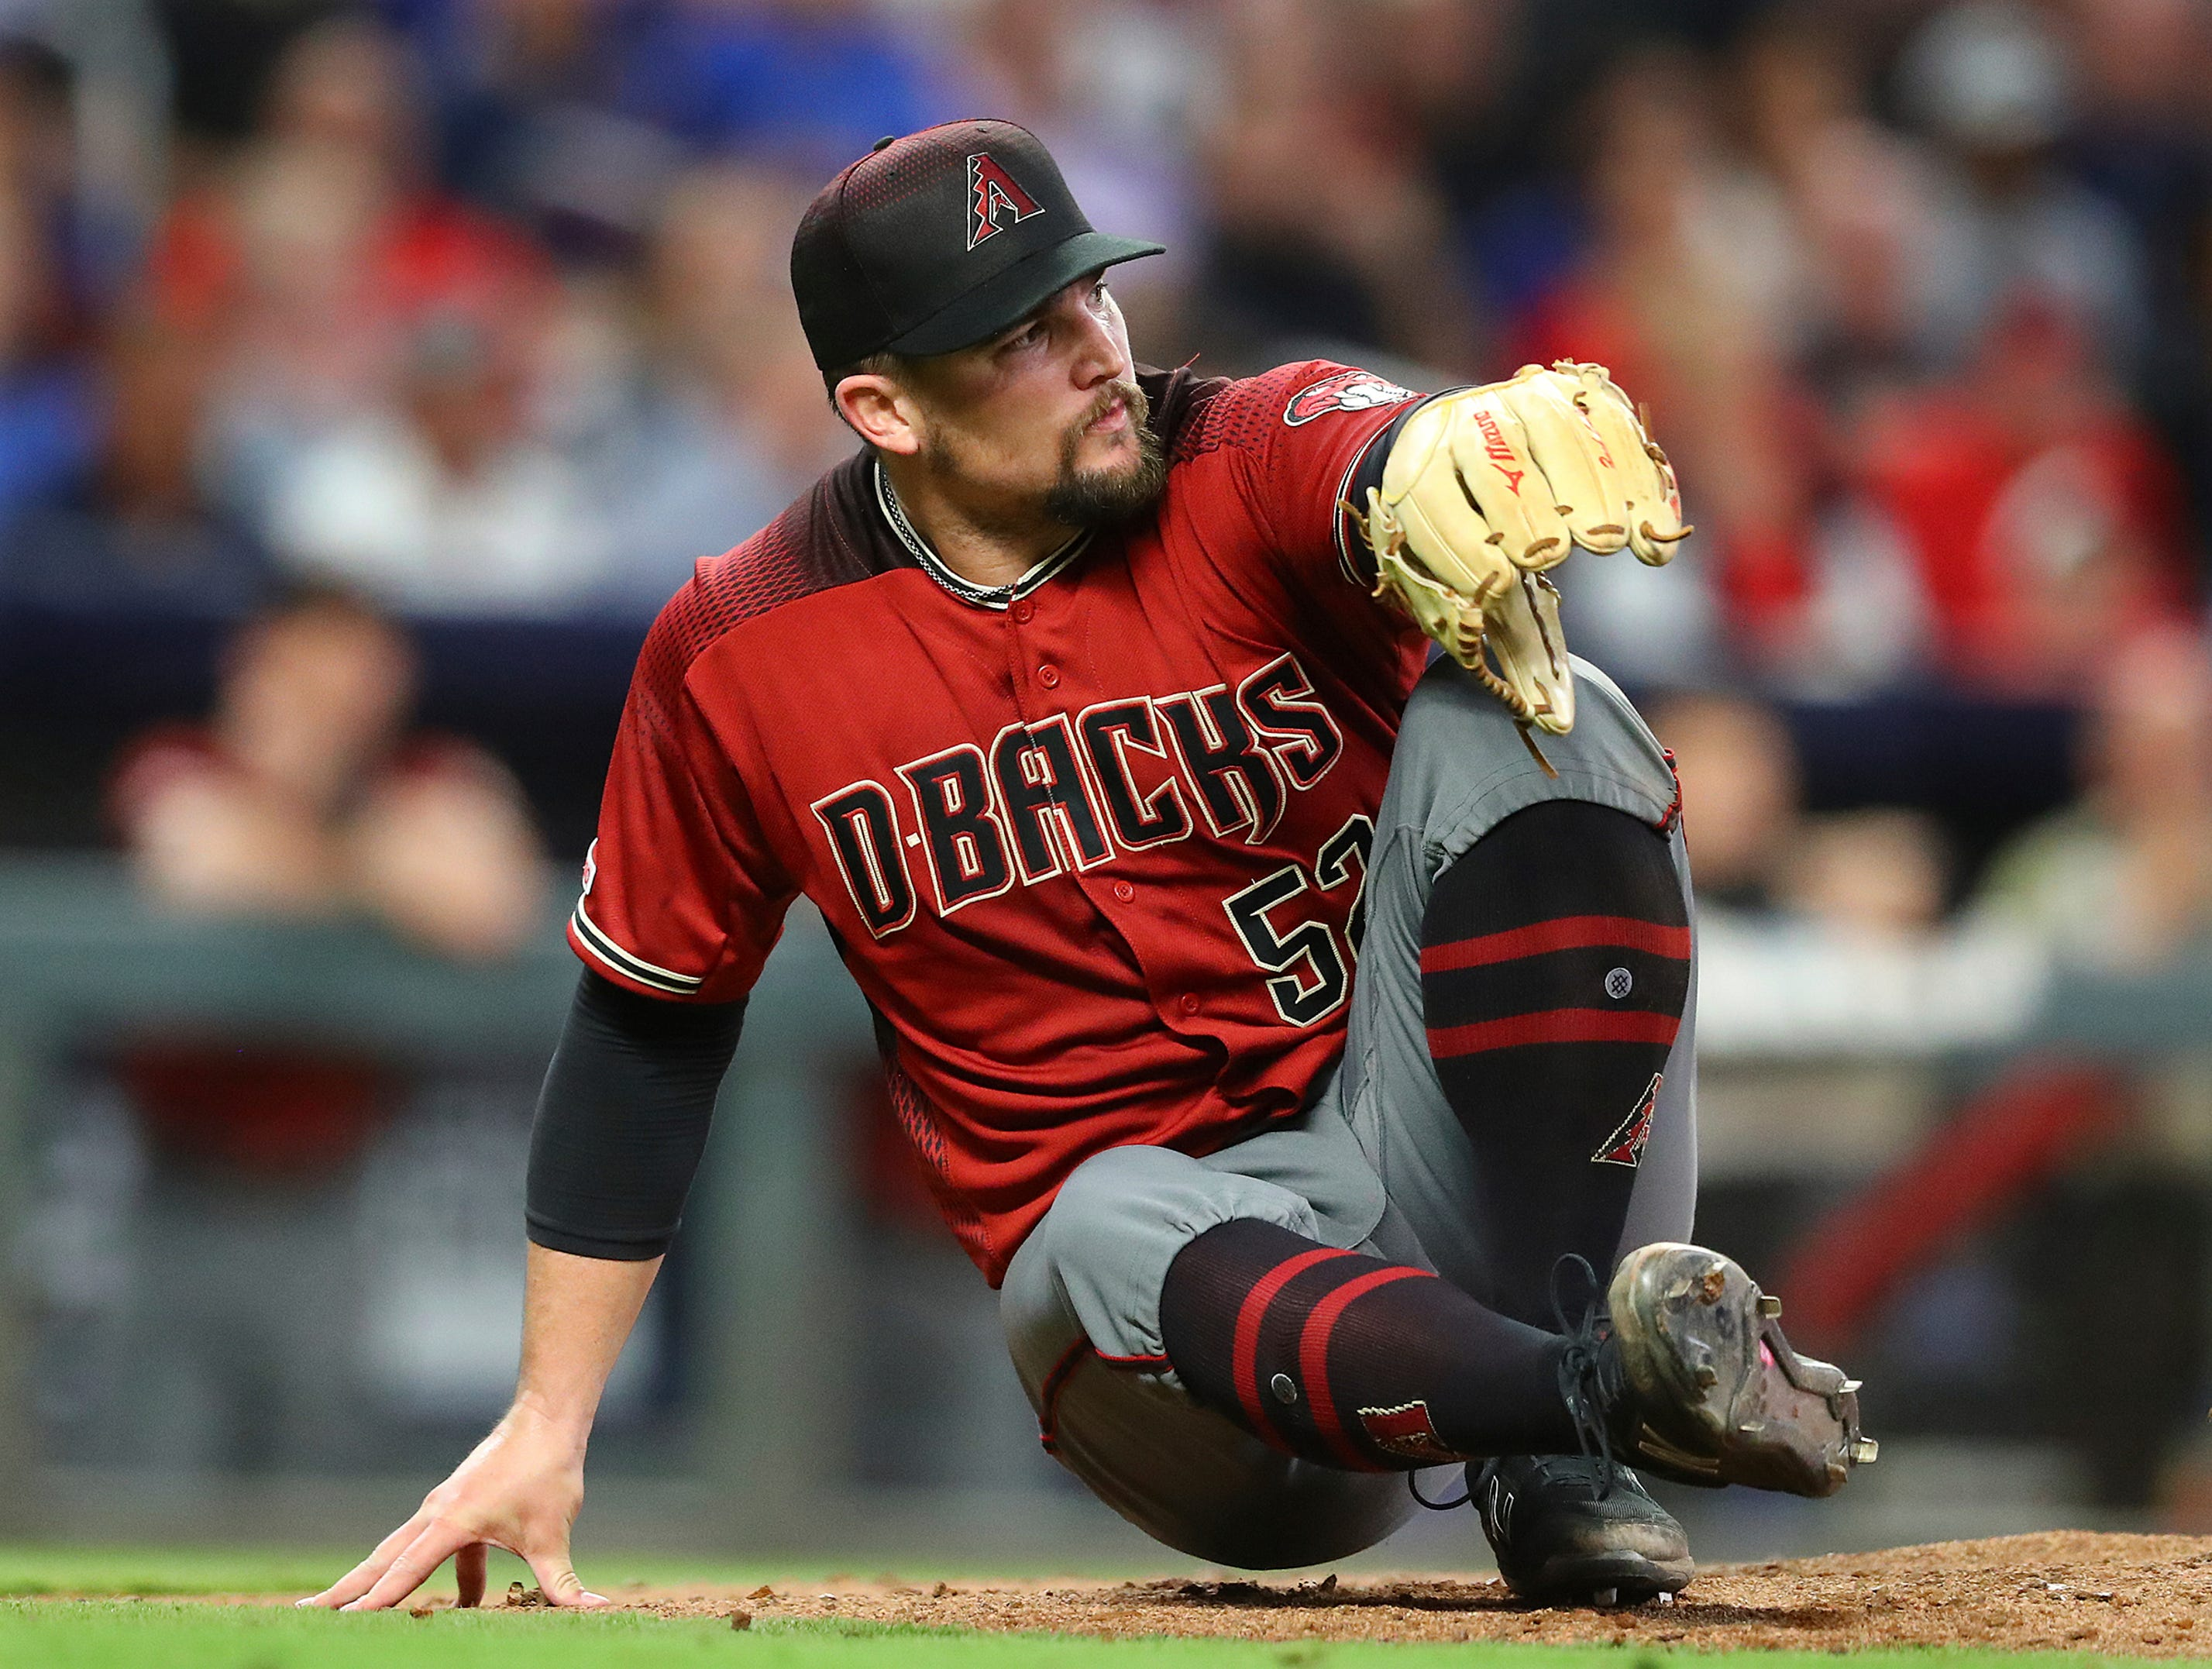 Arizona Diamondbacks pitcher Zack Godley drops to the mound to avoid a line drive by Atlanta Brave's Dansby Swanson that went for an out during the sixth inning of a baseball game Wednesday, April 17, 2019, in Atlanta. (Curtis Compton/Atlanta Journal-Constitution via AP)